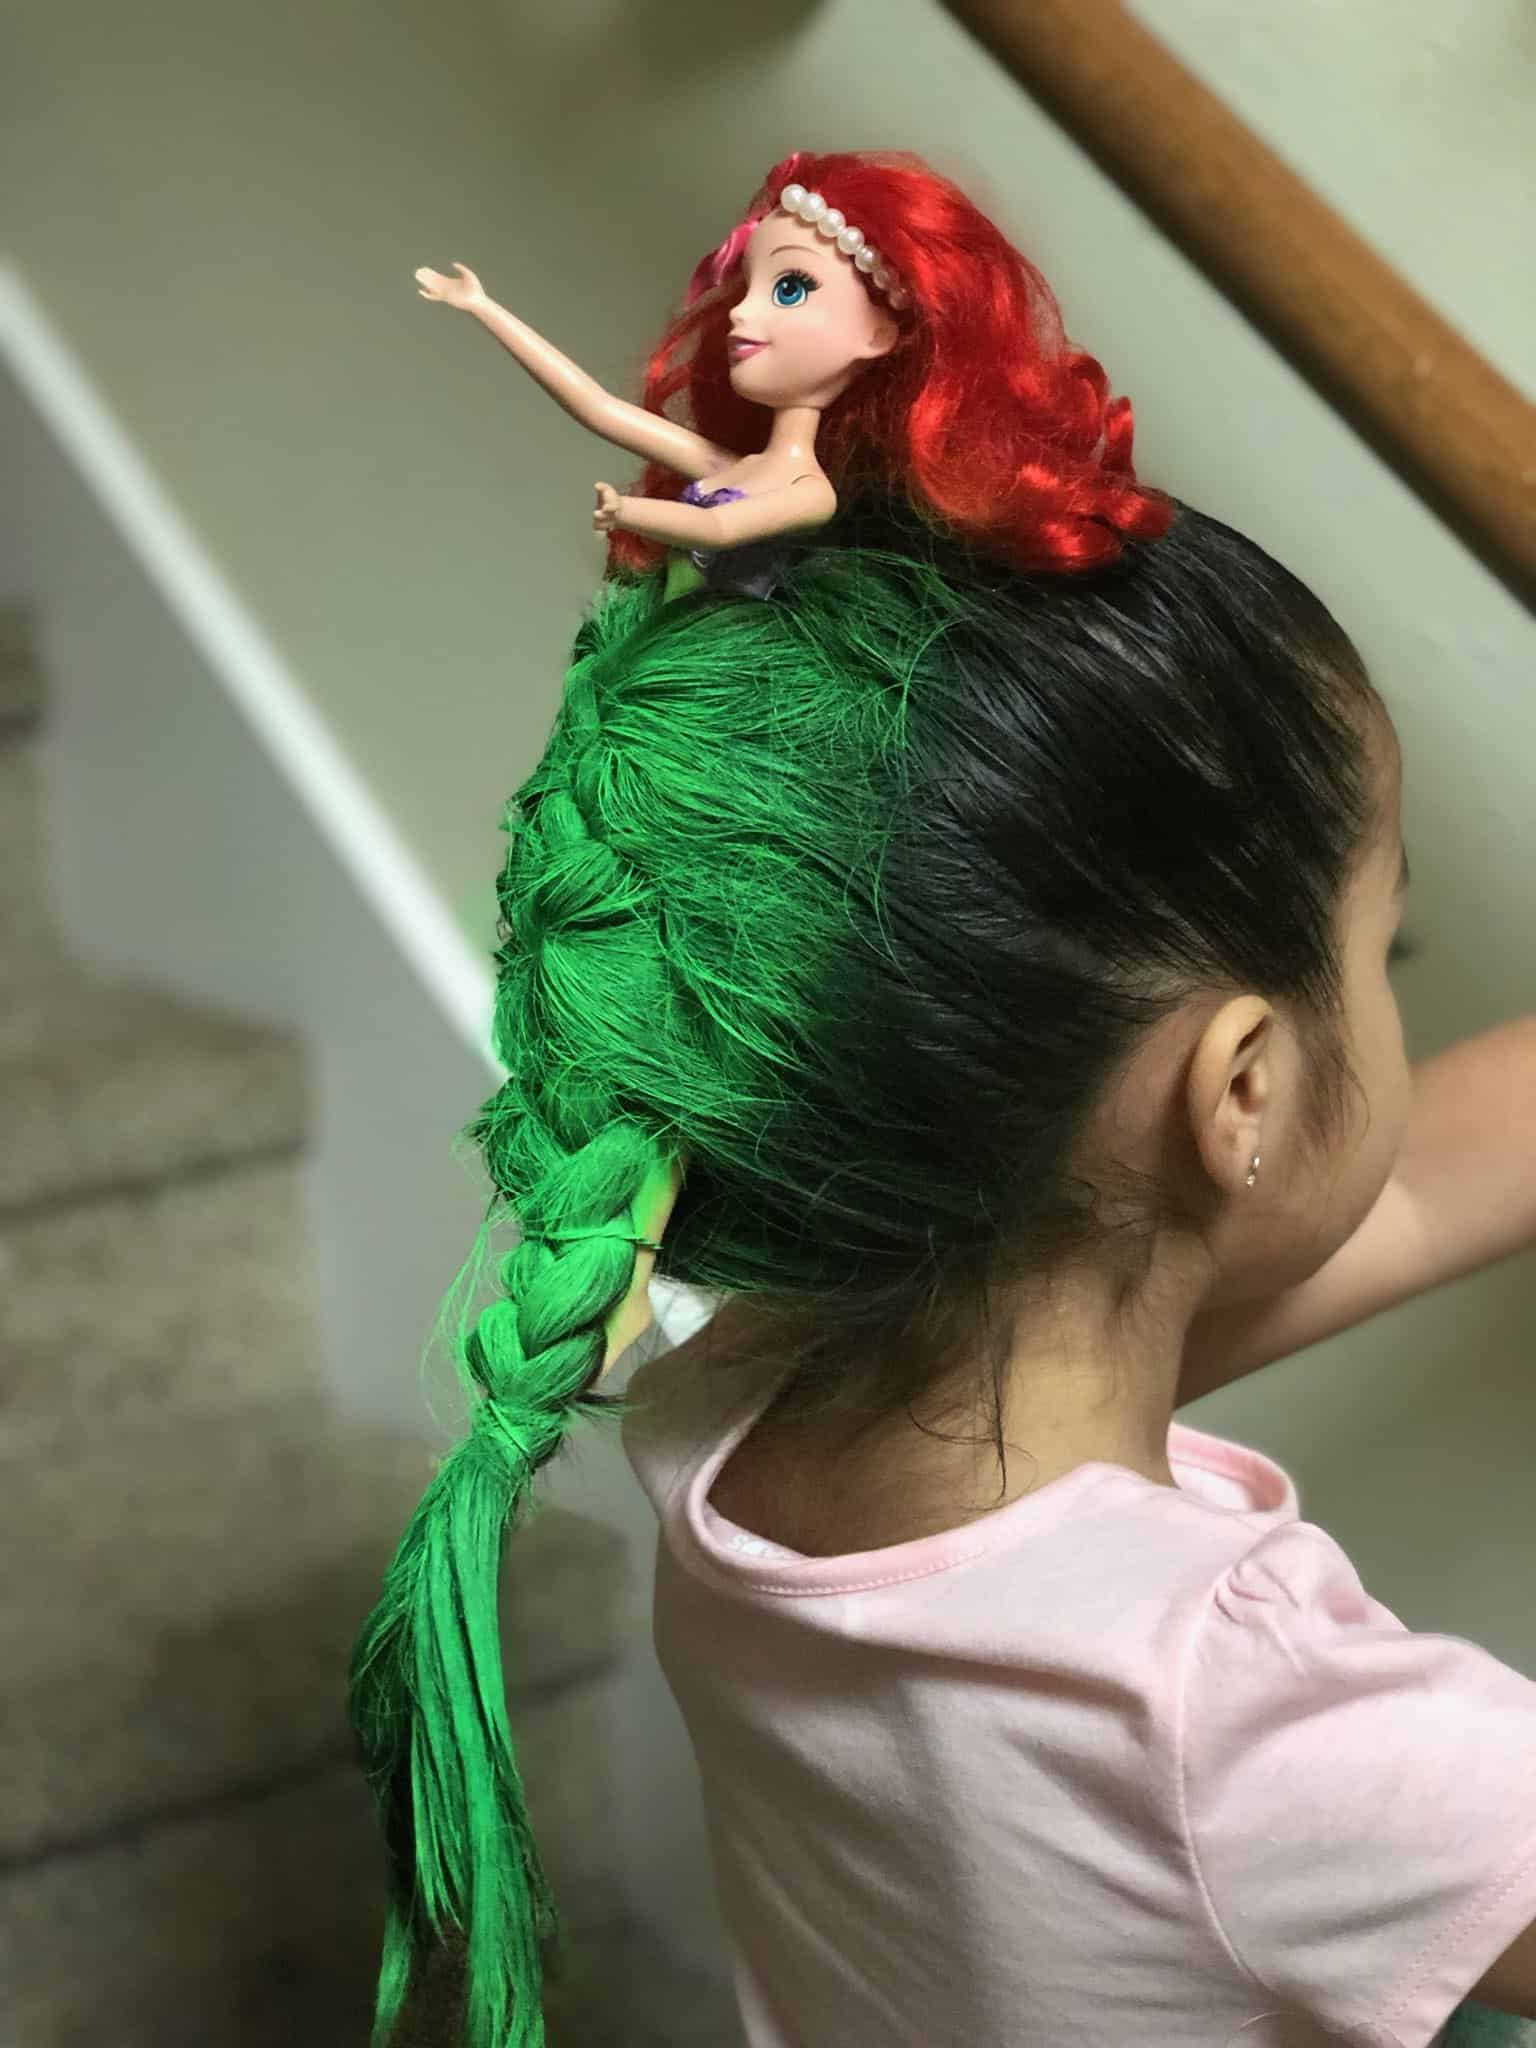 Photo of Little girl with mermaid hairdo wins crazy hairdo day at school